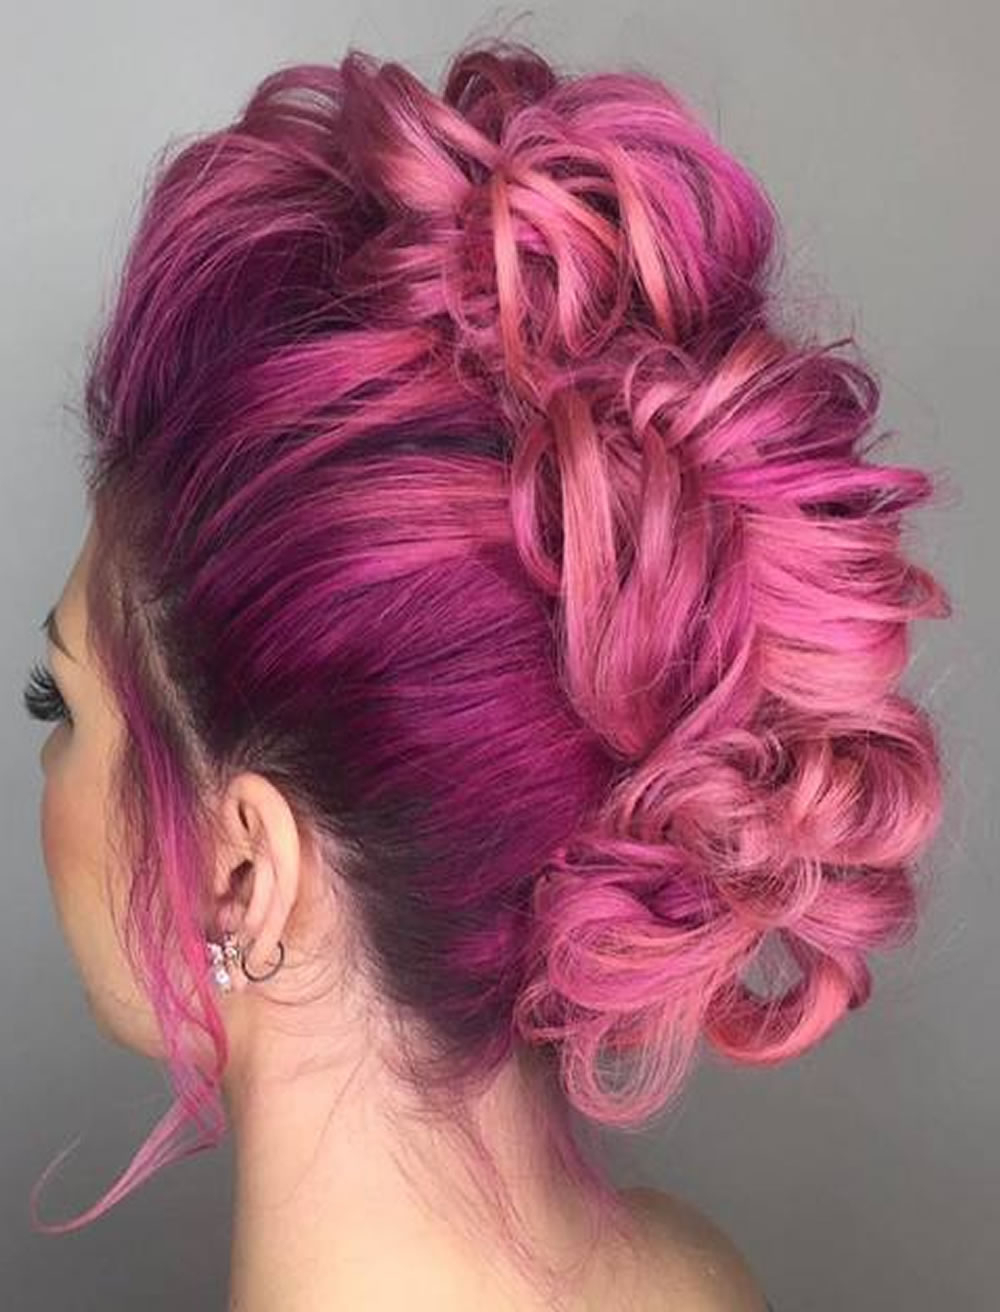 30 Glamorous Braided Mohawk Hairstyles For Girls And Women – Page 5 Pertaining To Famous Glamorous Mohawk Updo Hairstyles (View 3 of 20)